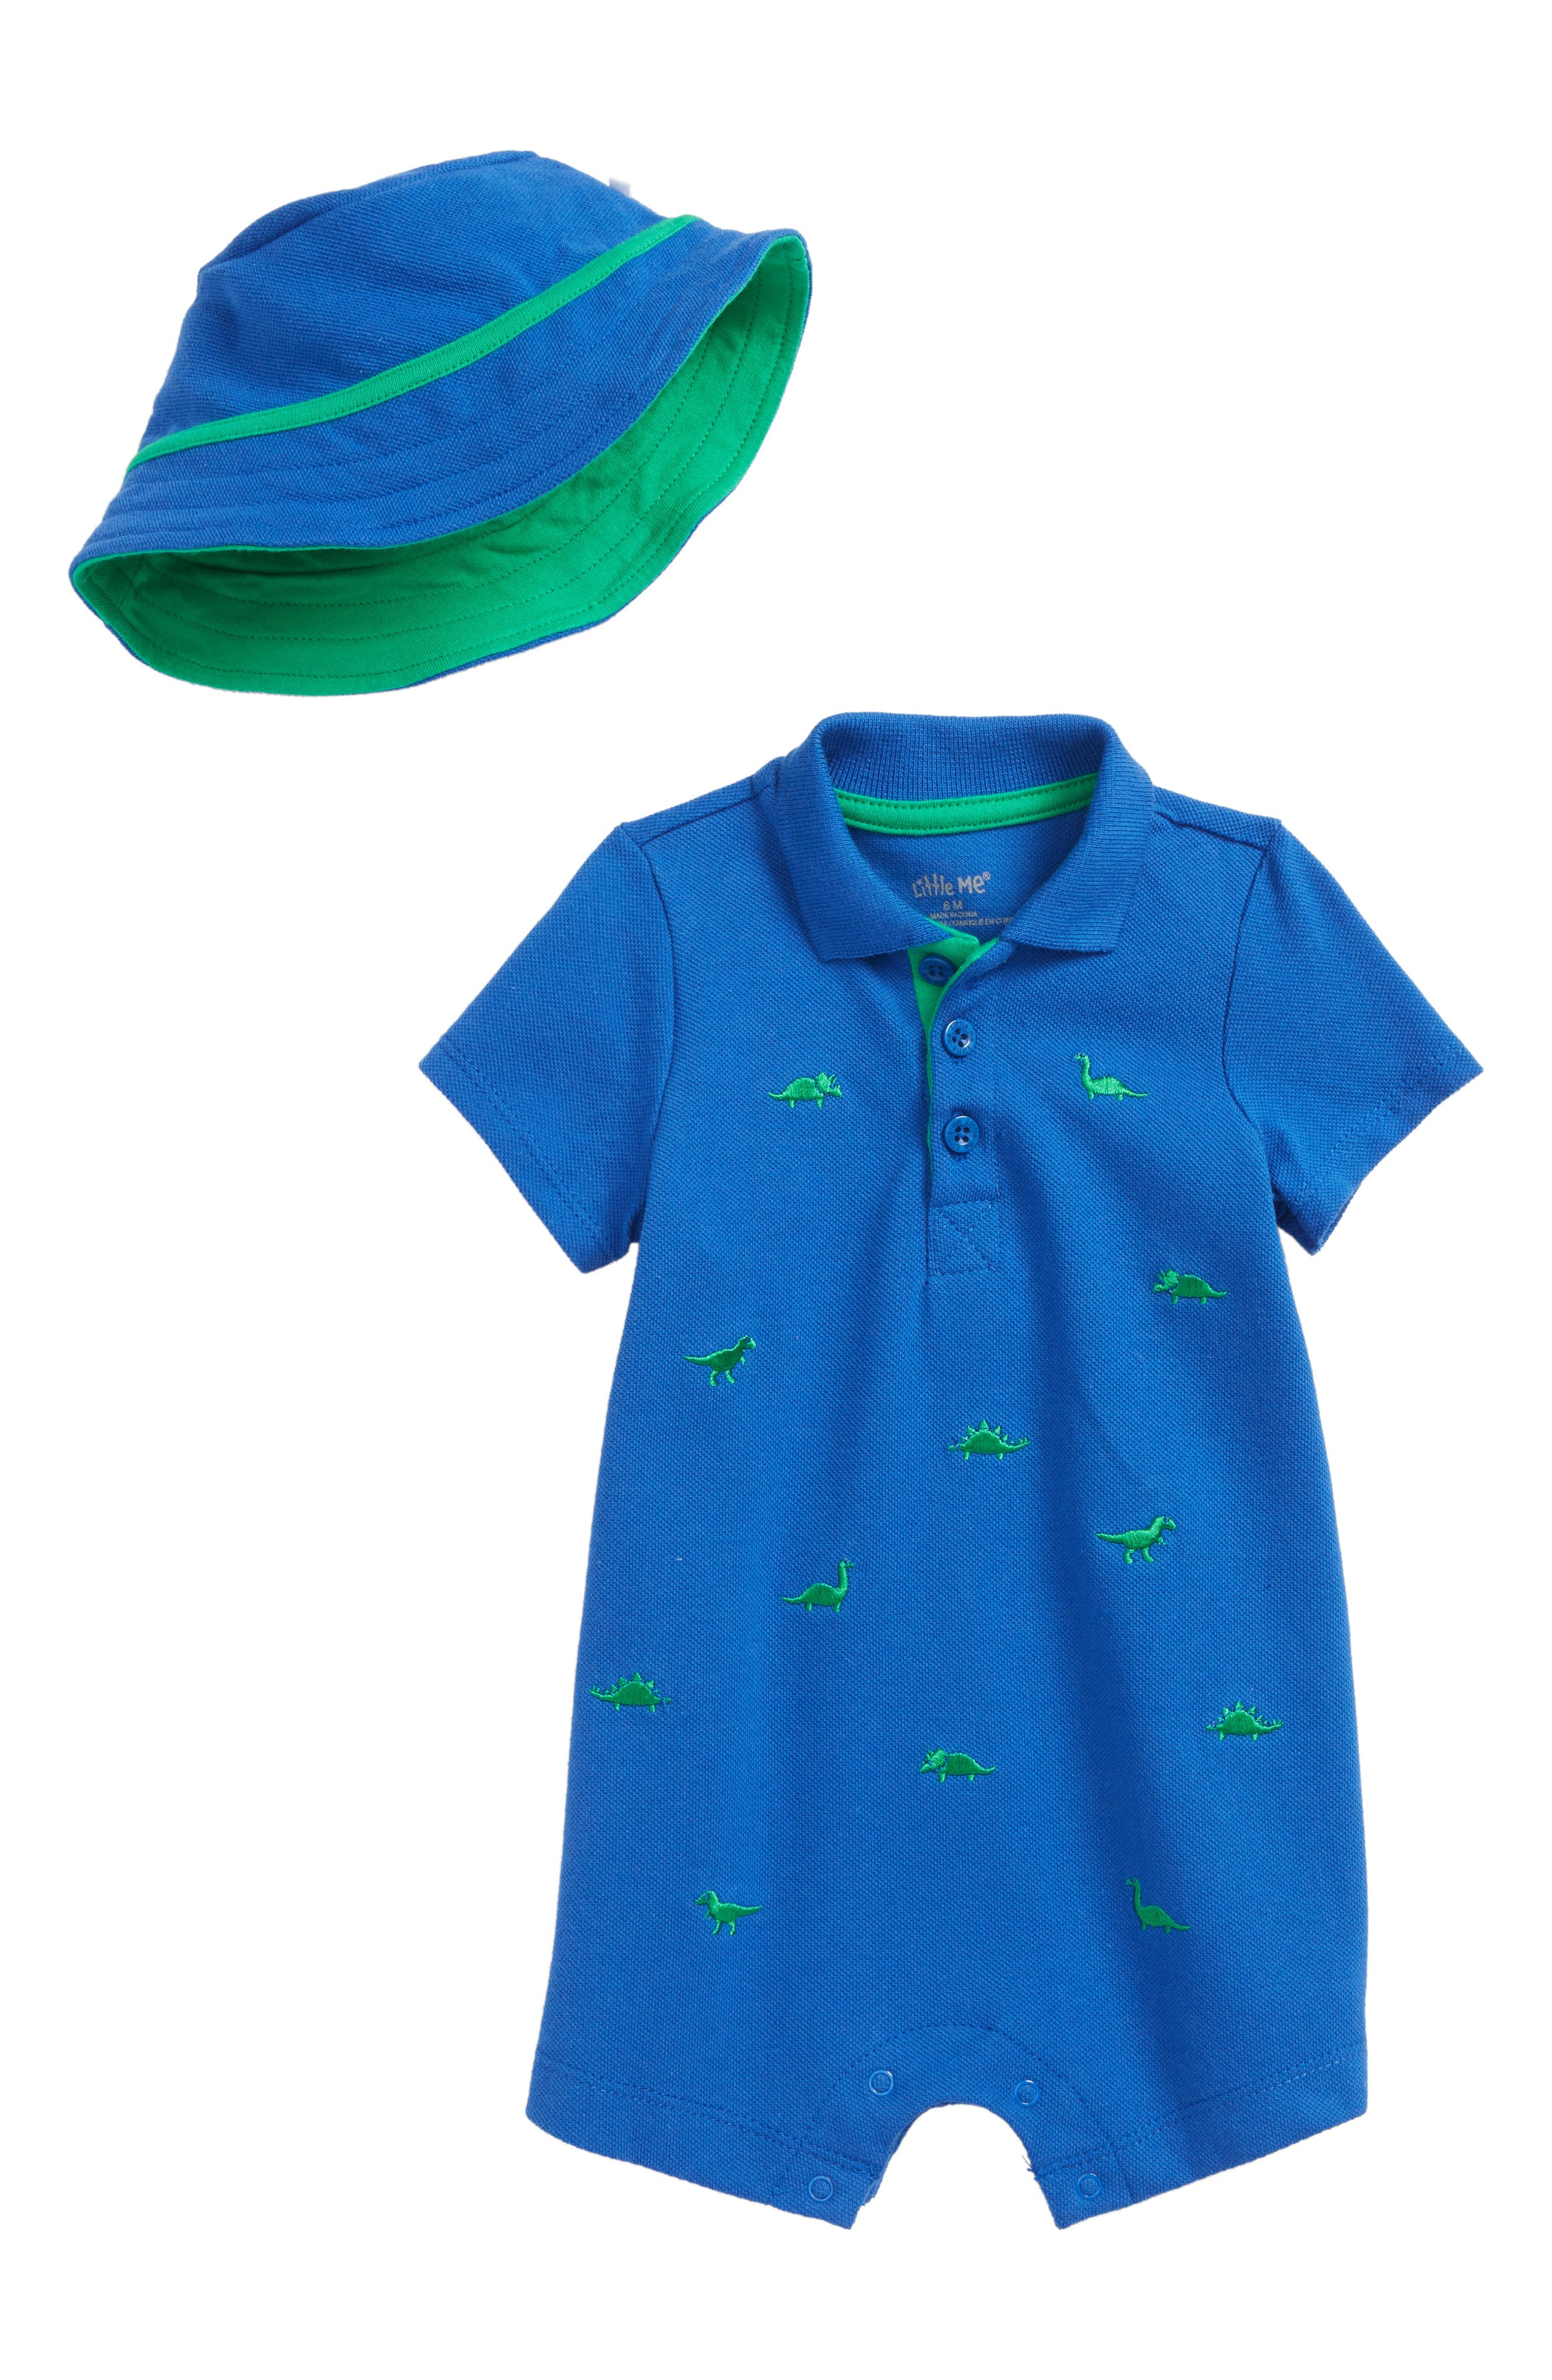 Main Image - Little Me Embroidered Dino Romper & Hat Set (Baby Boys)